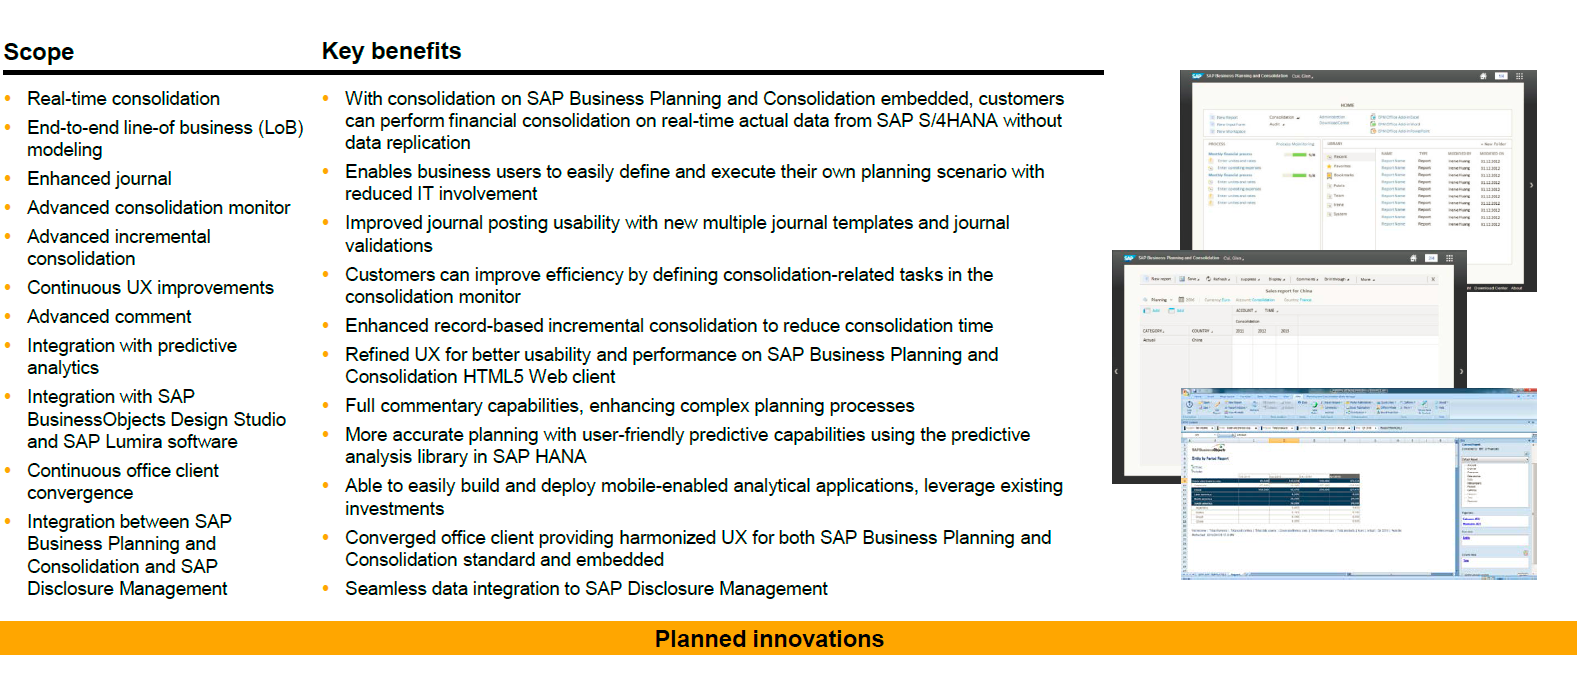 SAP Business Planning and